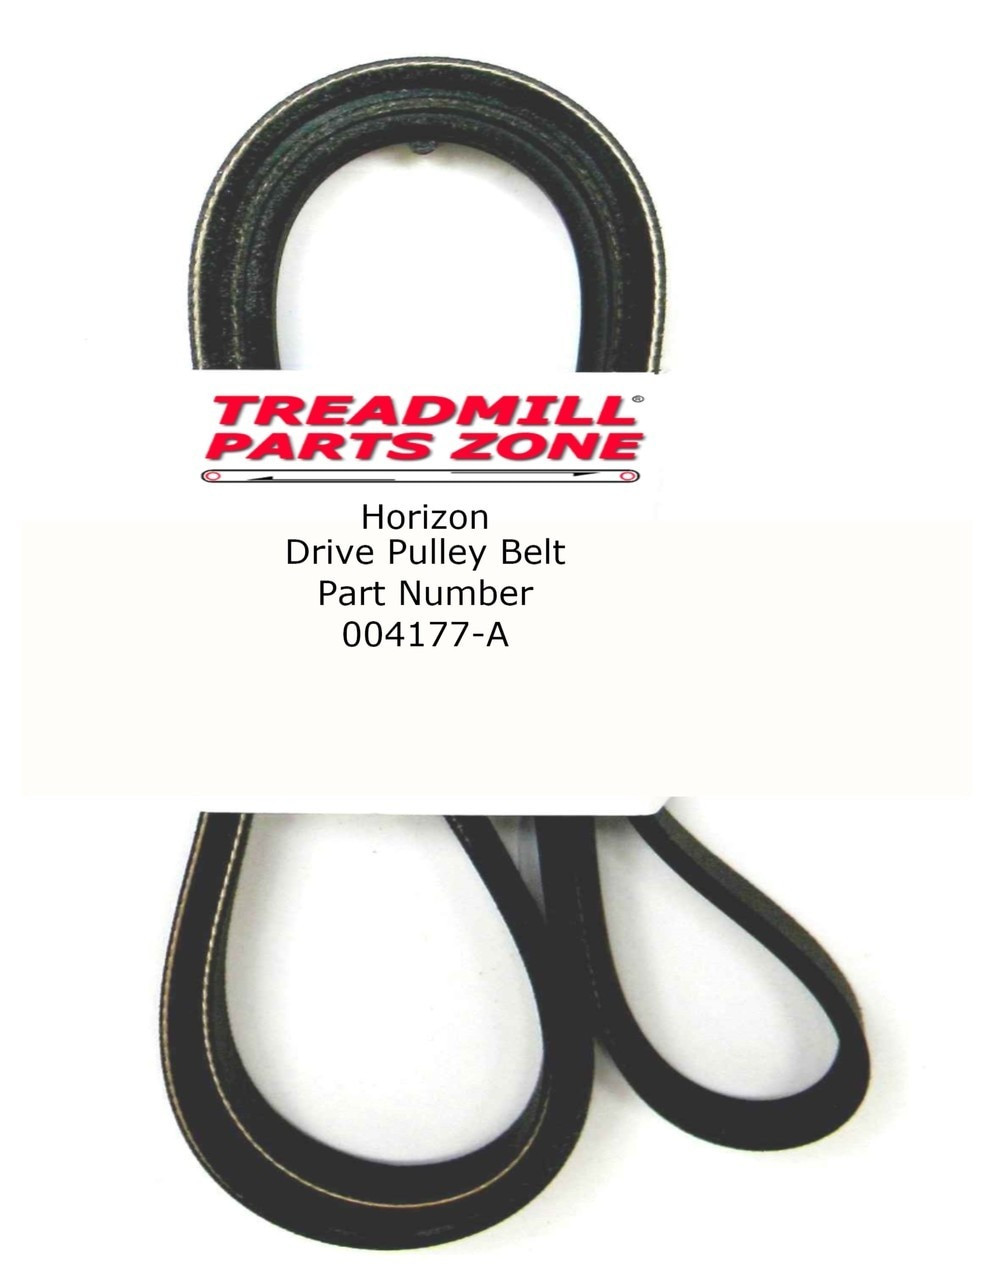 Horizon Elliptical Model EX75 EP134 Drive Pulley Belt Part Number 004177-A